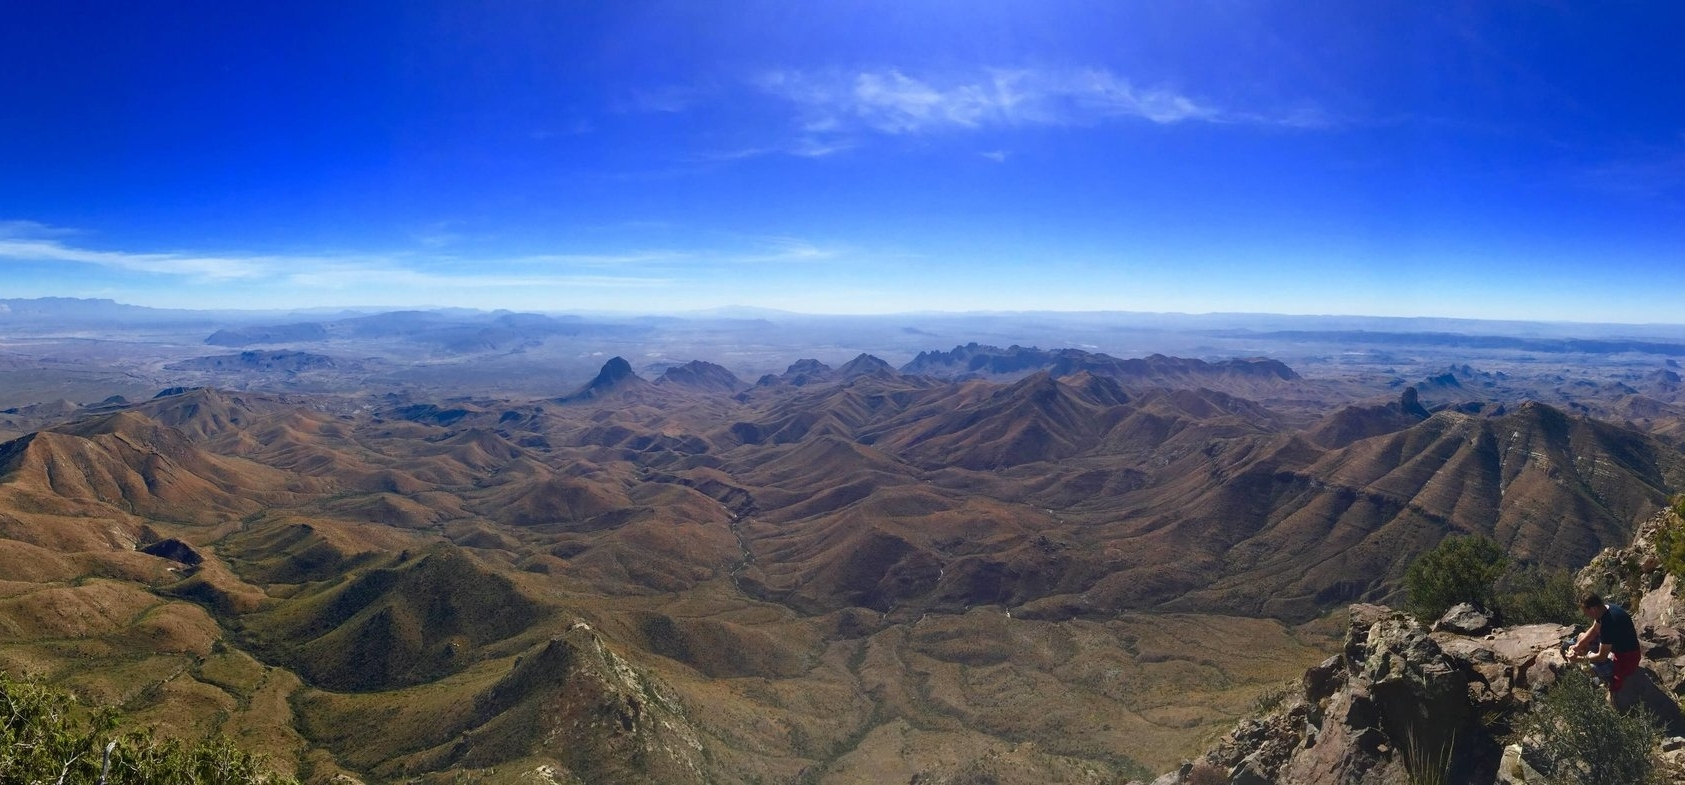 A beautiful sweeping view from the South Rim in Big Bend National Park